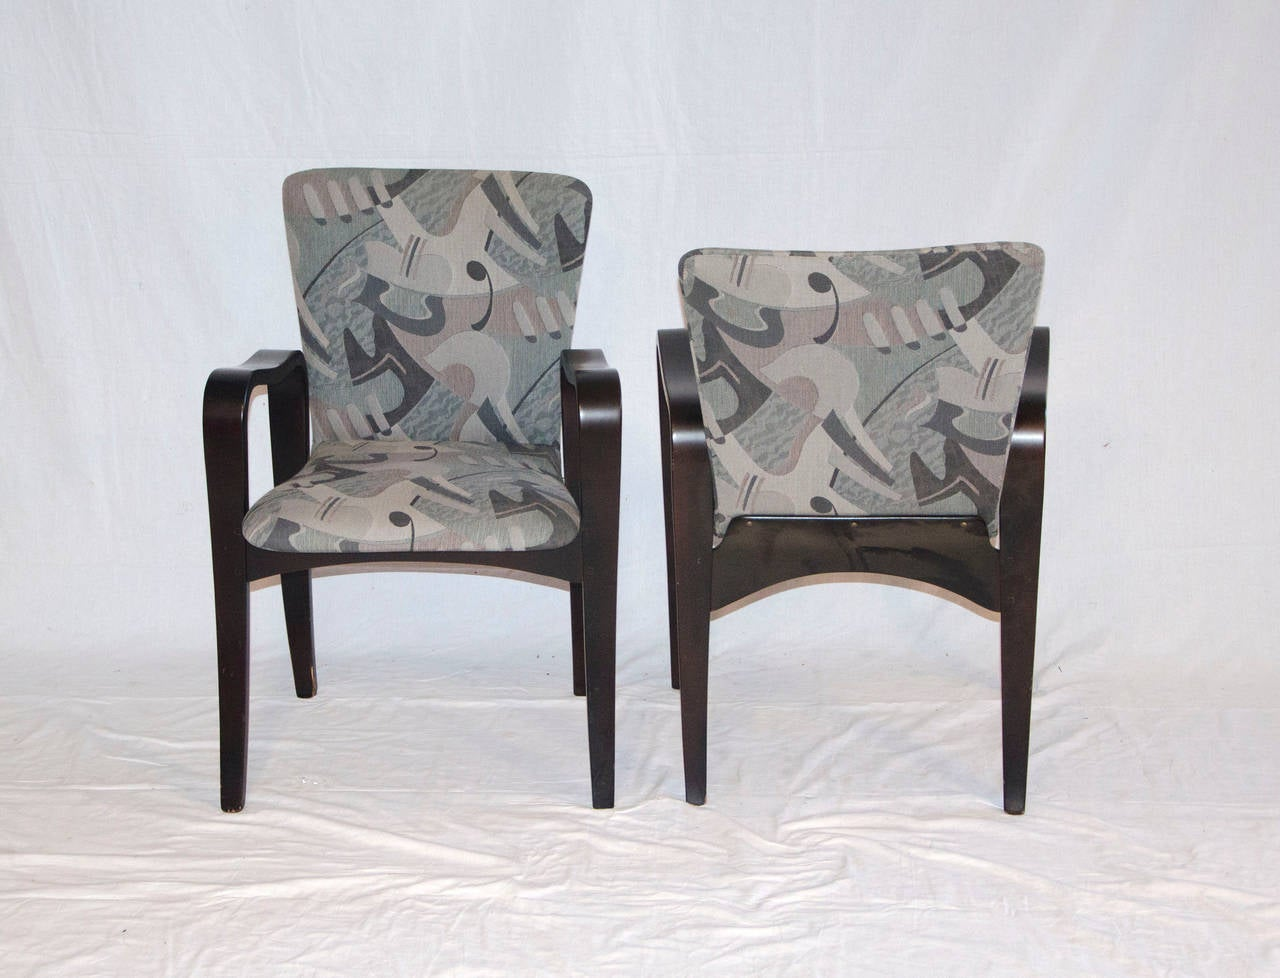 Fabric Mid Century Bent Ply Dining Chairs - Thaden-Jordan For Sale